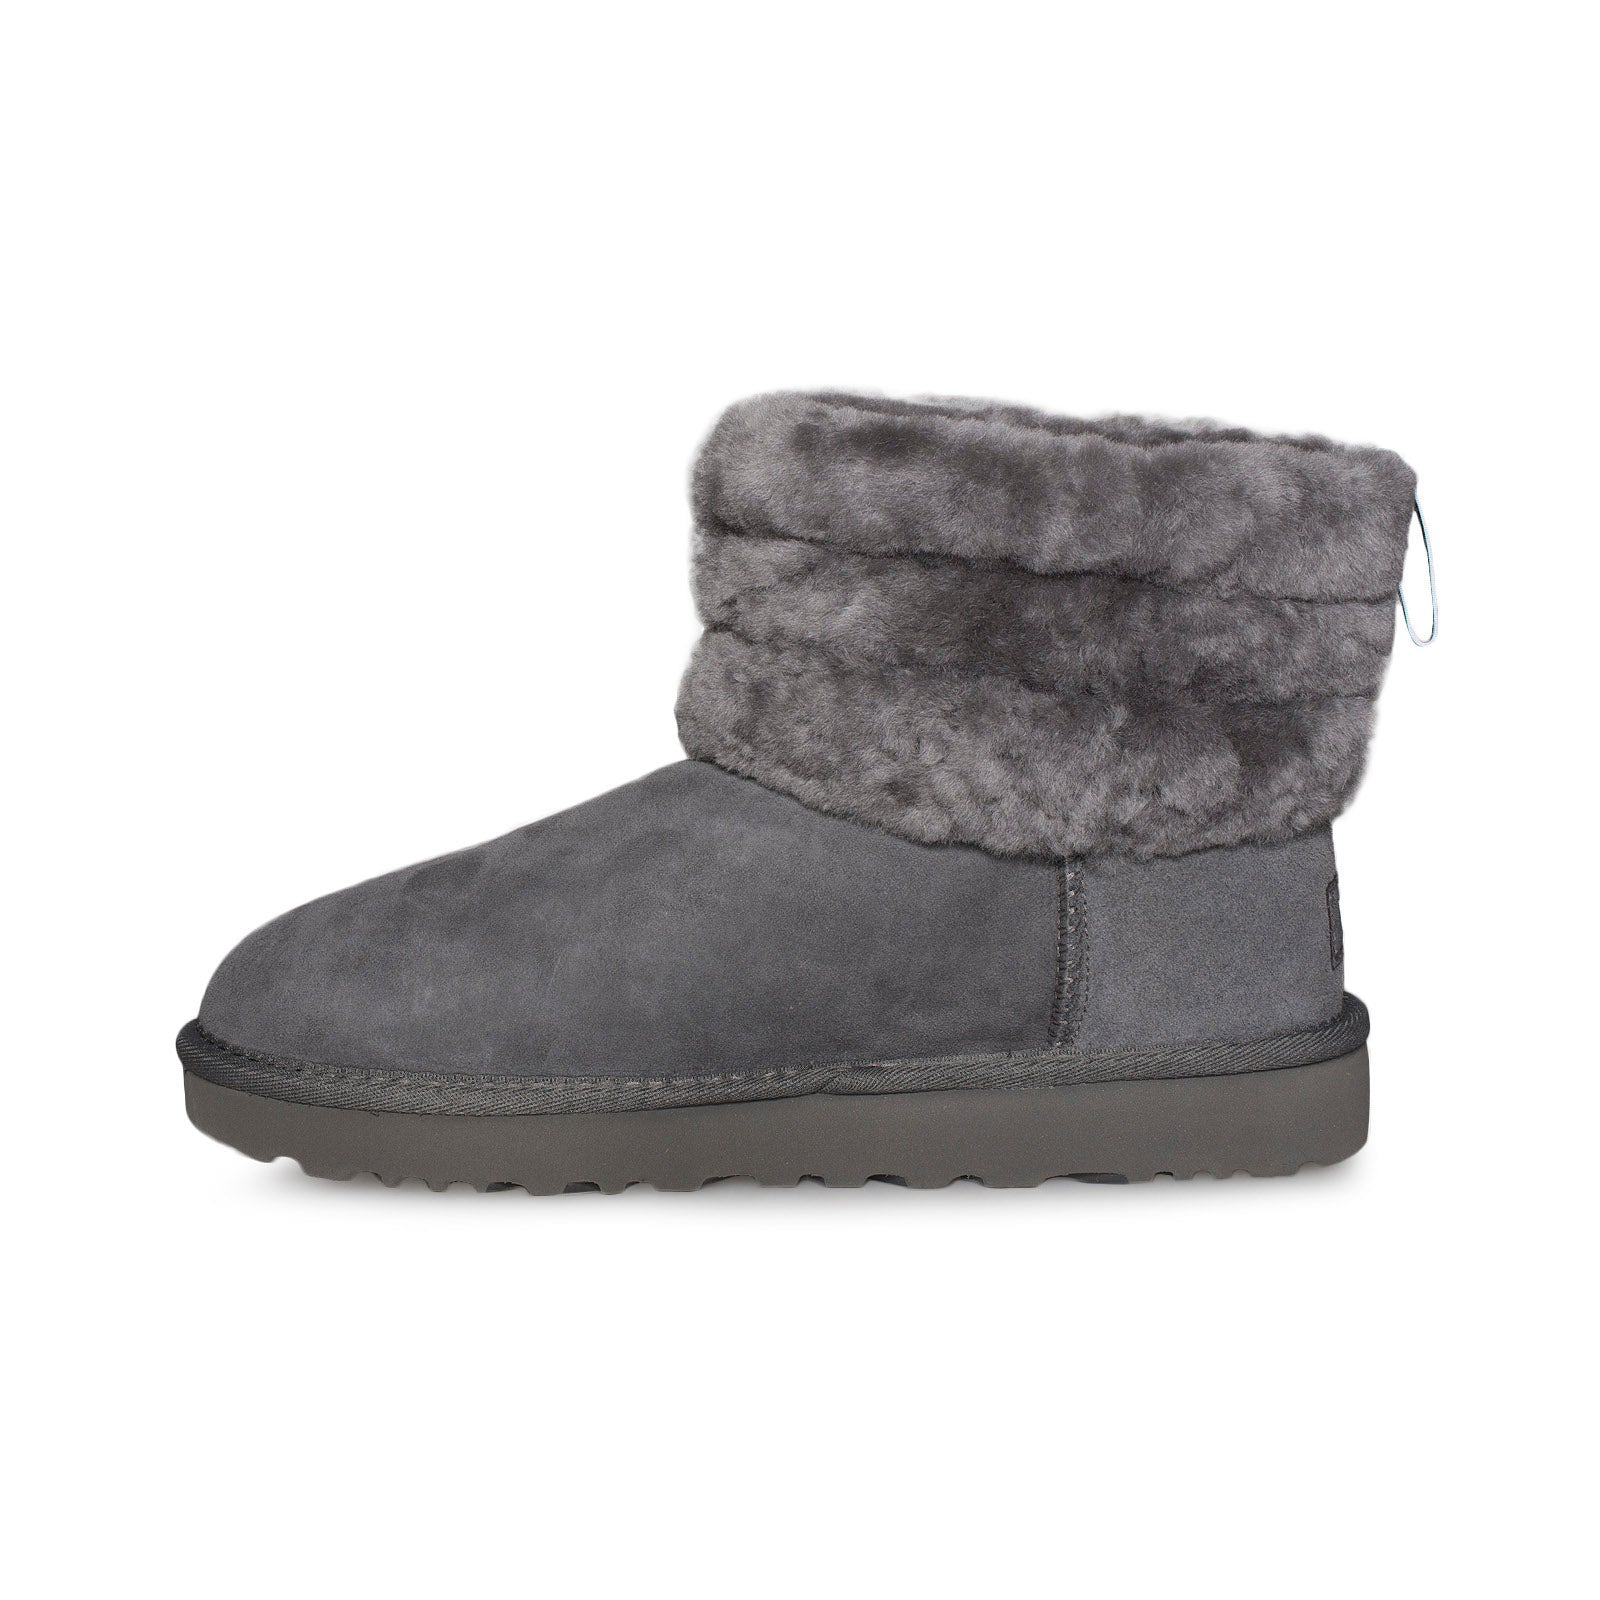 2e9b9112285 UGG Fluff Mini Quilted Charcoal boots - Women's